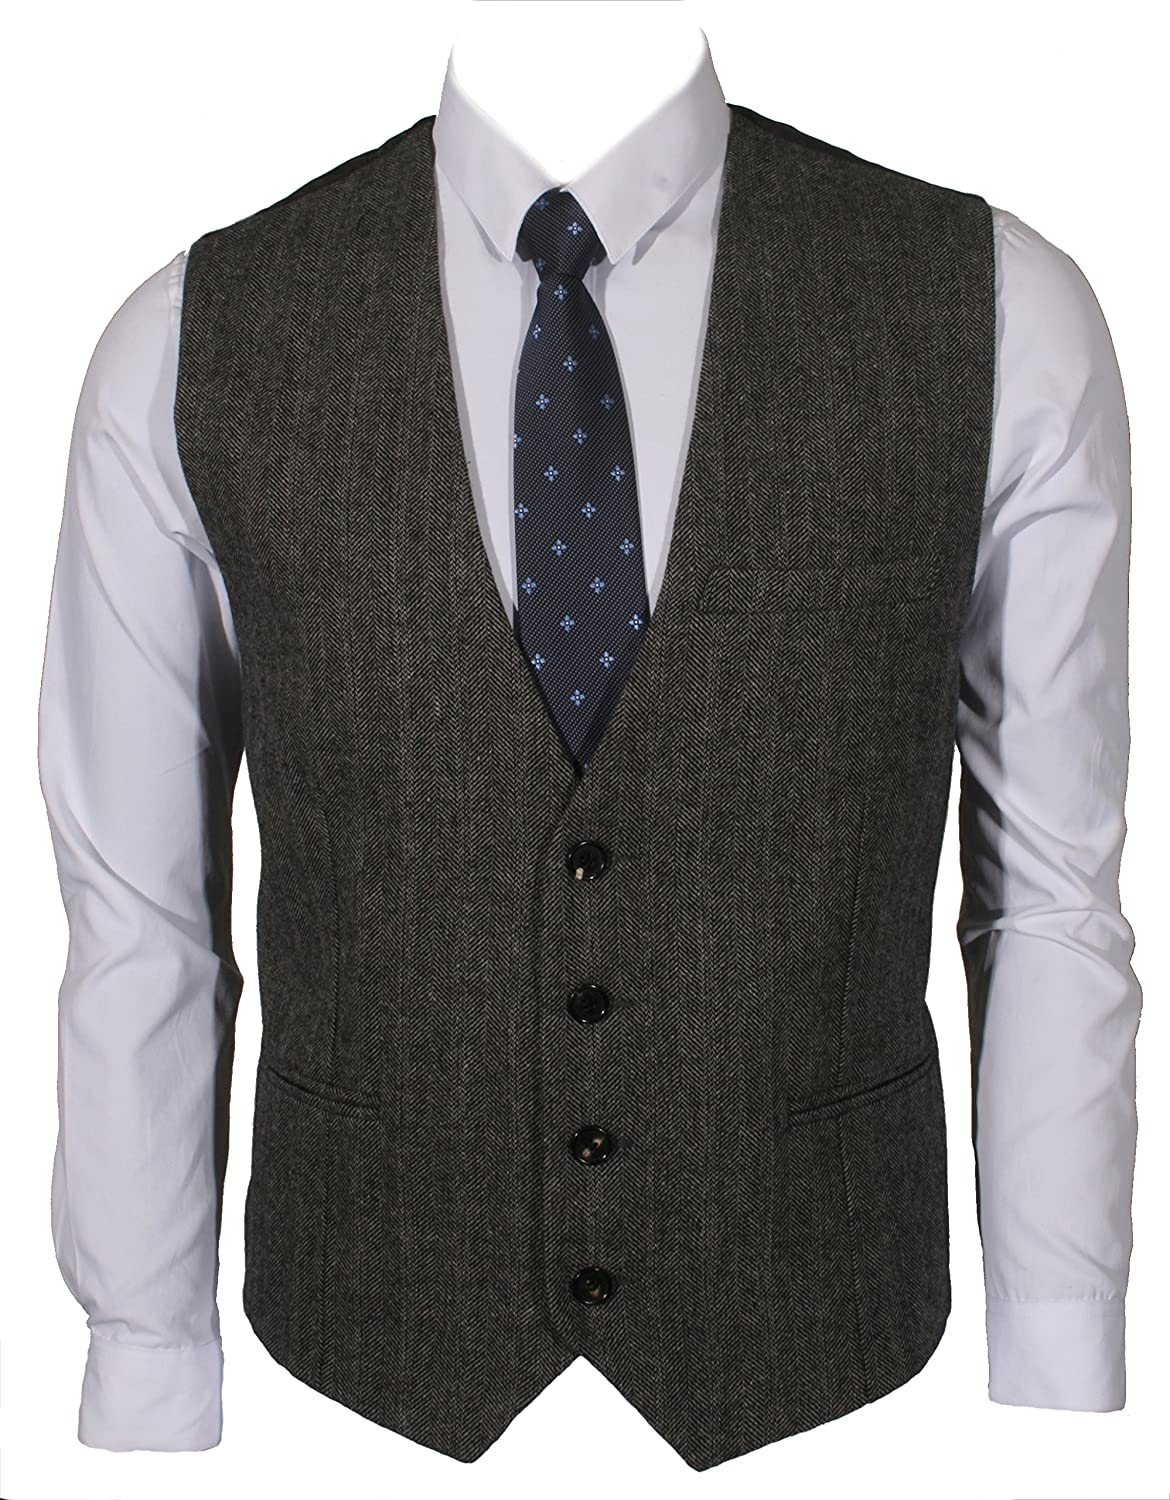 e8bbf0e7ce2 Ruth Boaz 3Pockets 4Buttons Wool Herringbone Tweed Business Suit Vest at  Amazon Men s Clothing store